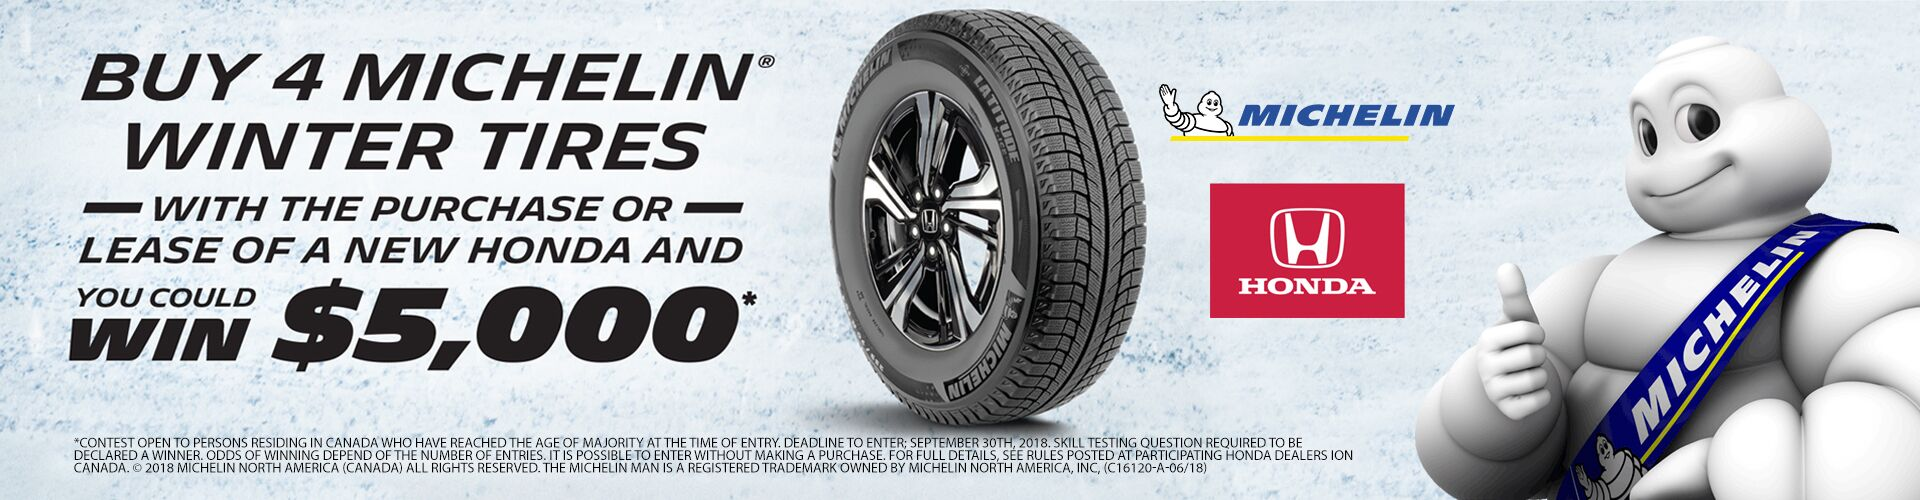 Michelin Winter Tire